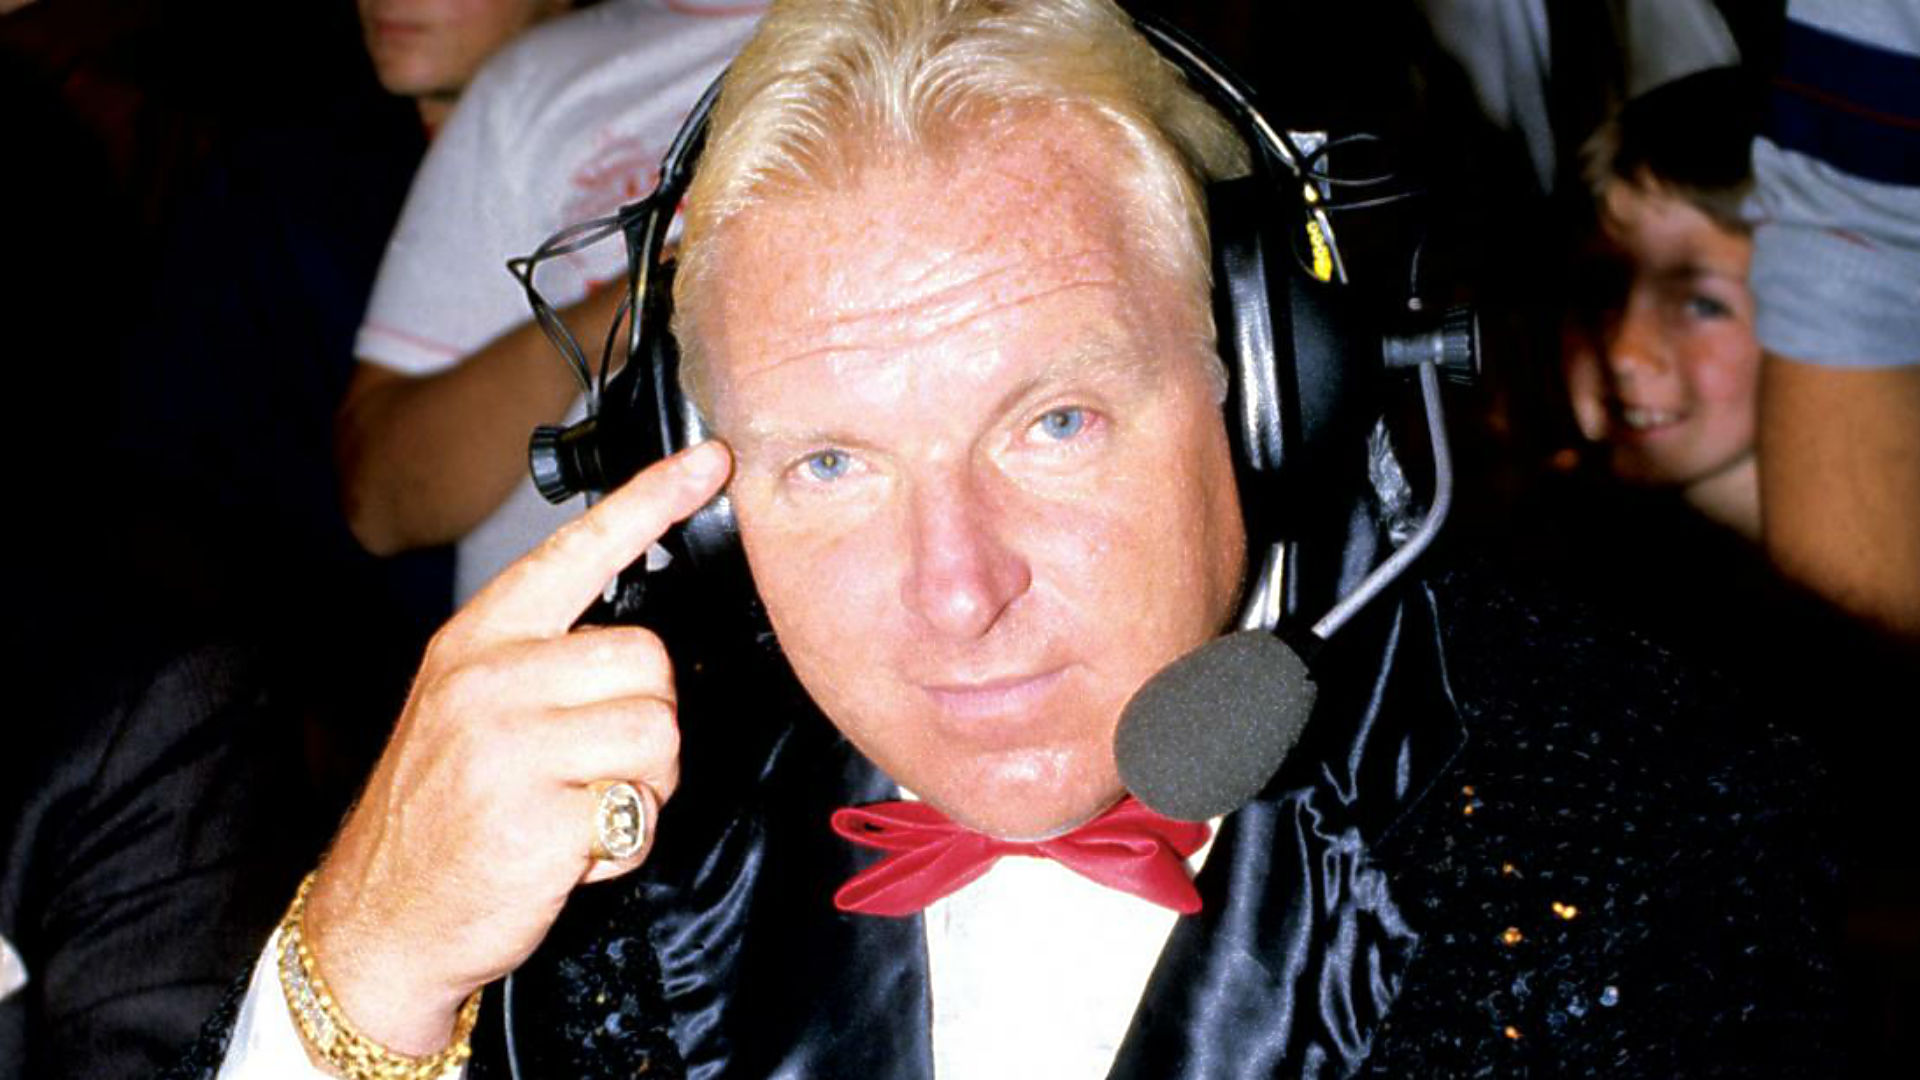 WWE Hall of Famer Bobby 'The Brain' Heenan dies